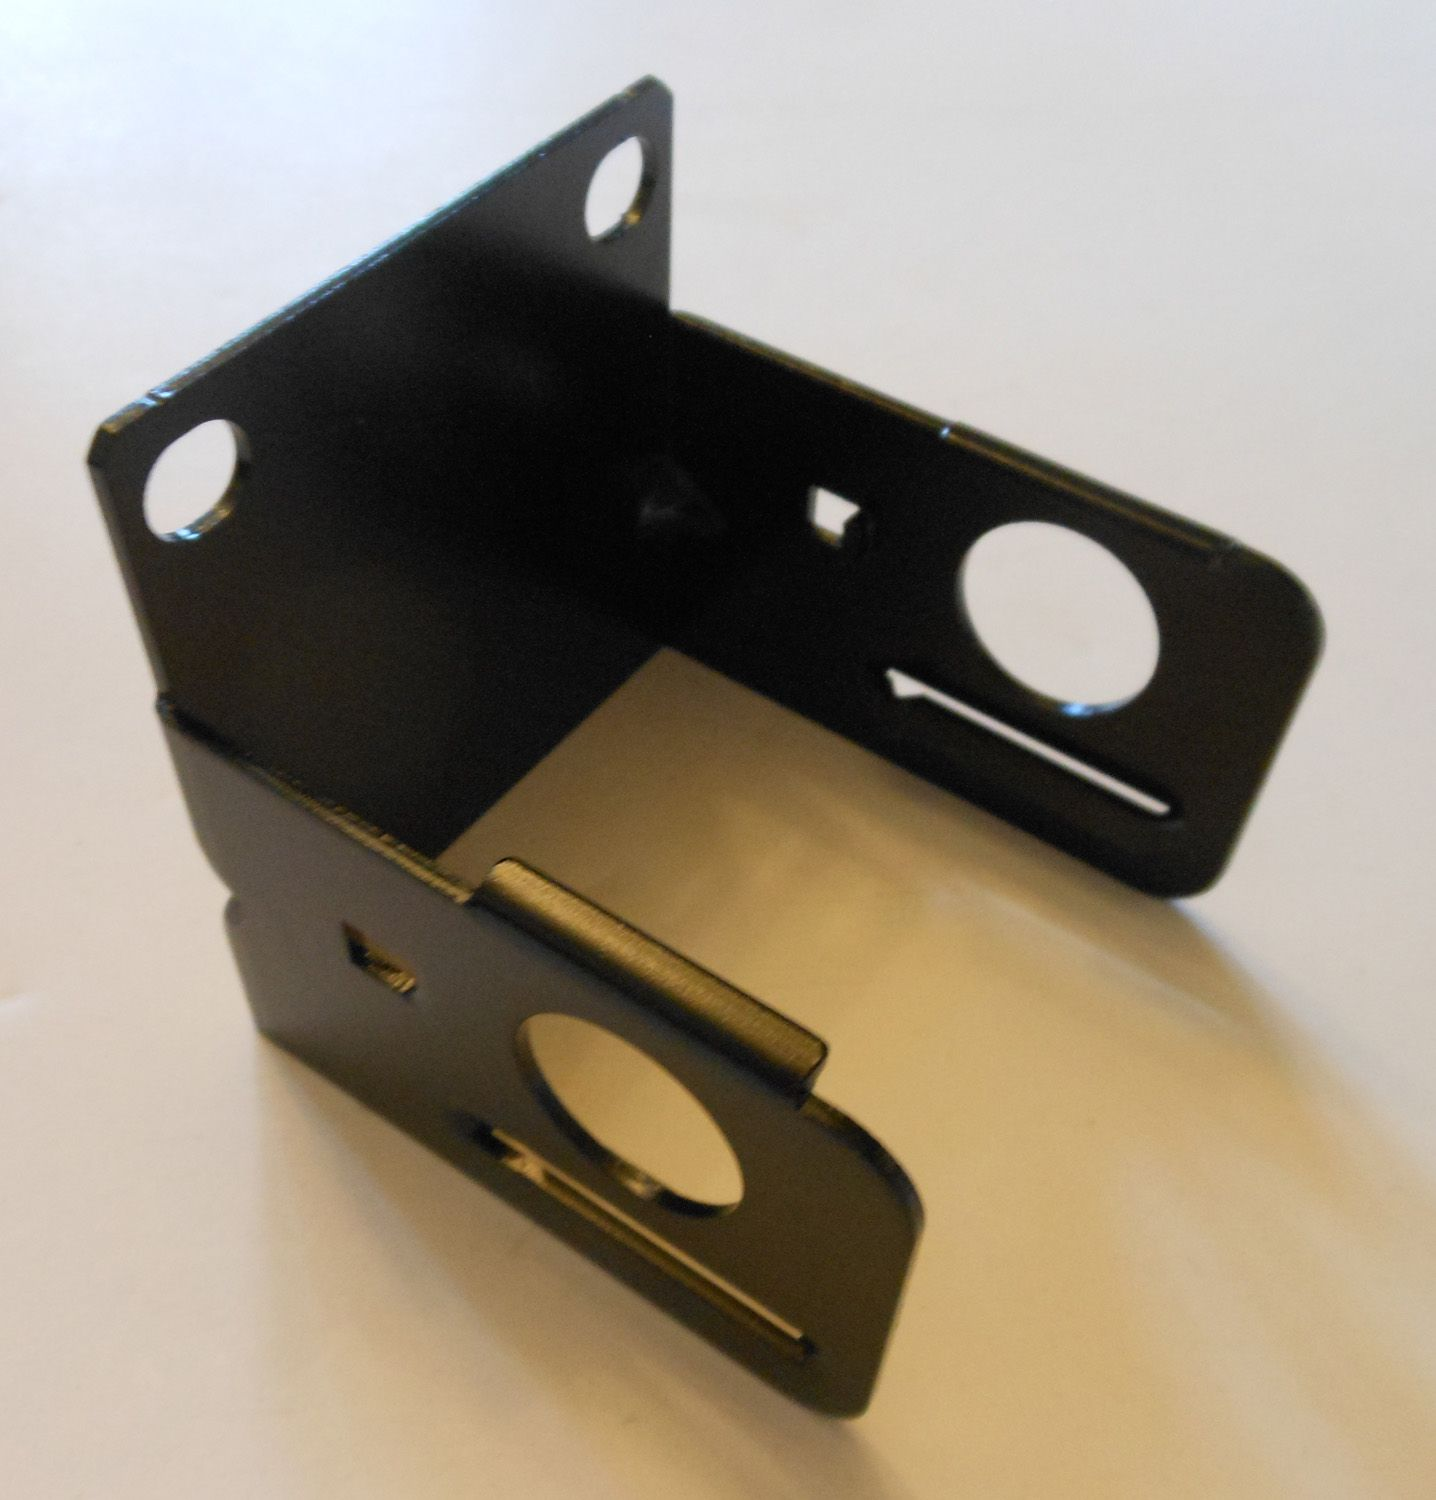 C Bracket New This Is A C Bracket Made Of New Rolled Steel The Bracket Is Used To Hold An Air Cylinder It Measures 2 7 8 By 2 7 8 Cylinder Bracket Steel